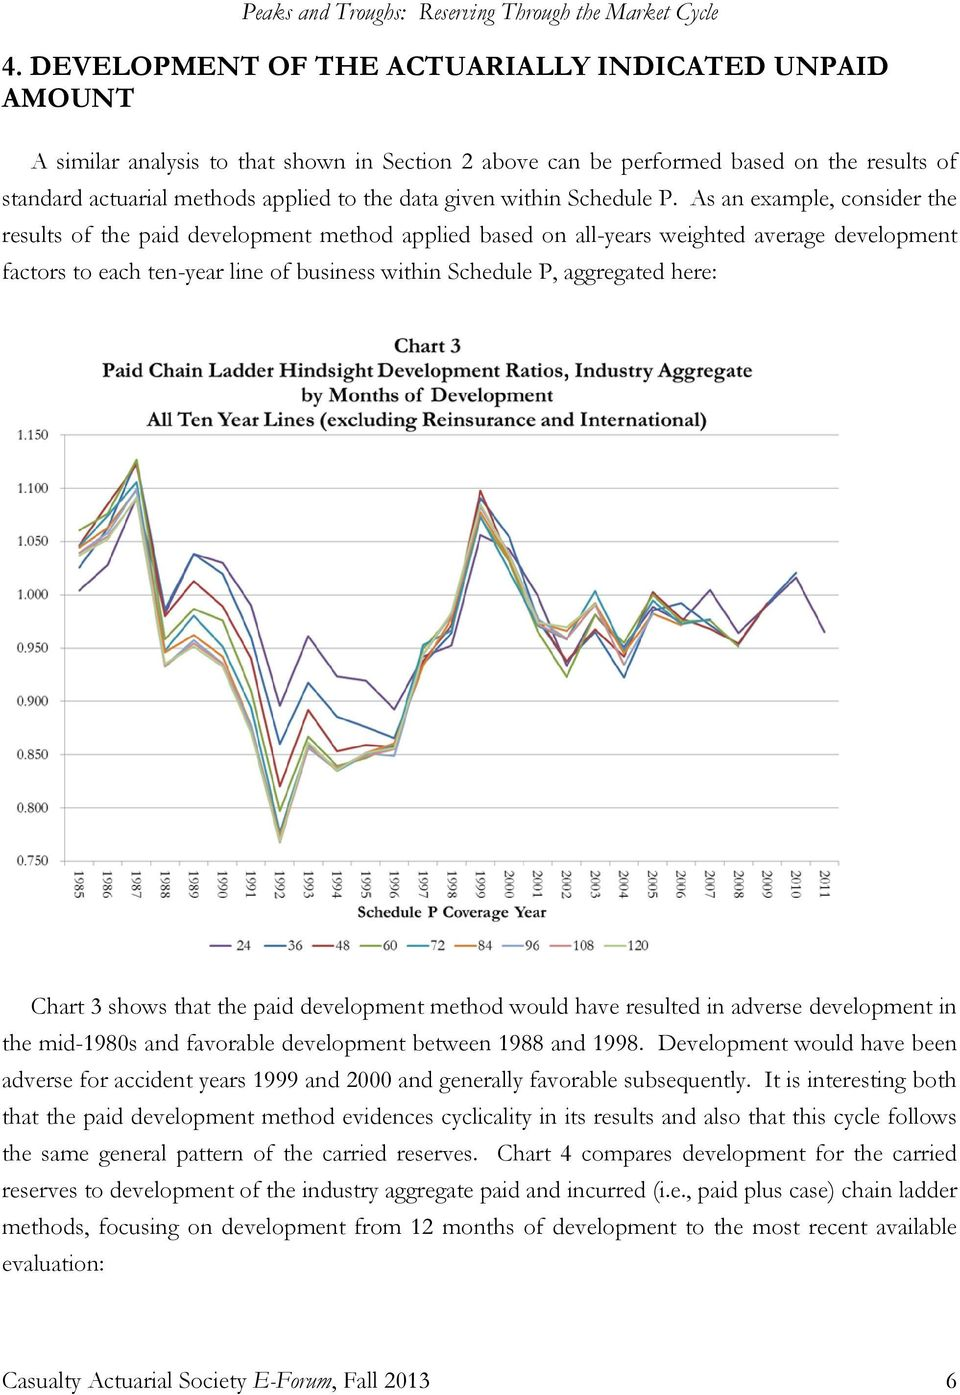 As an example, consider the results of the paid development method applied based on all-years weighted average development factors to each ten-year line of business within Schedule P, aggregated